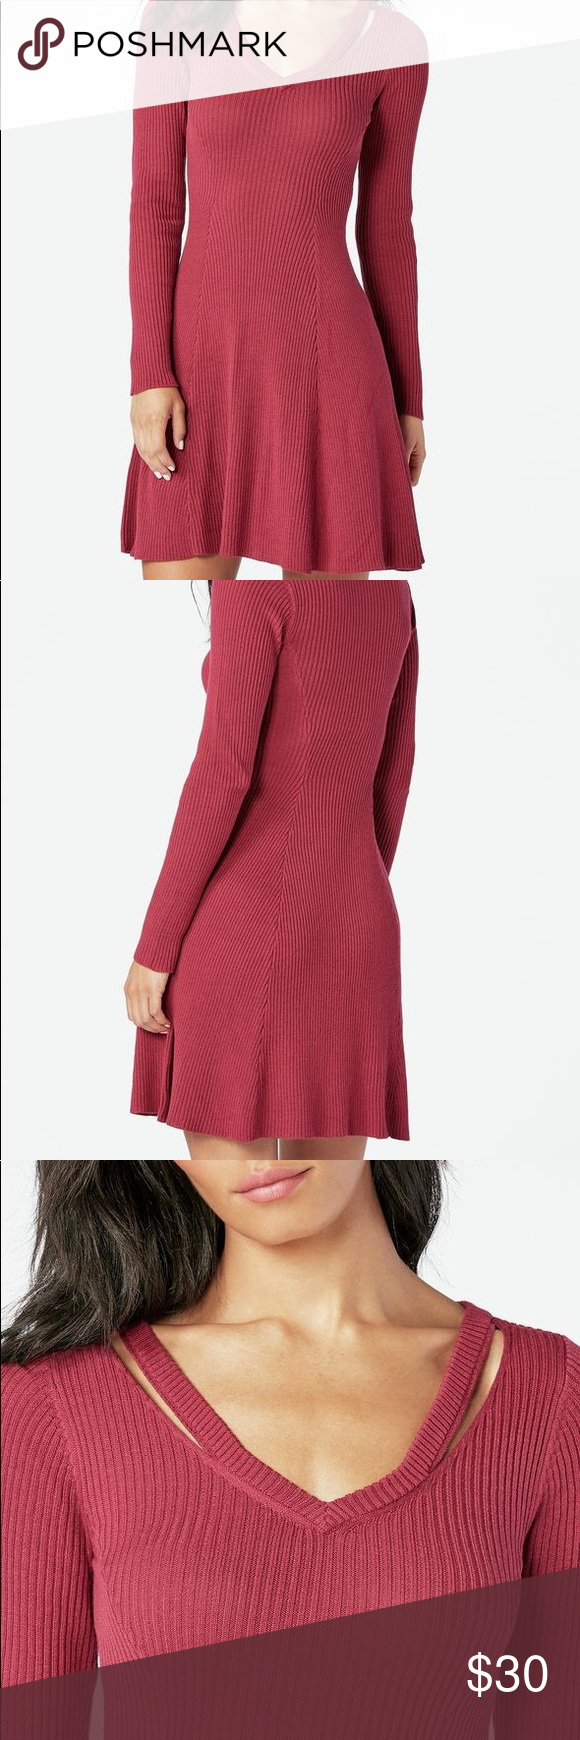 a74d02dc352 NWT Cutout Fit and Flare Sweater Dress Dark pink fit and flare sweater dress  with cutout shoulder details and long sleeves by JustFab JustFab Dresses  Mini